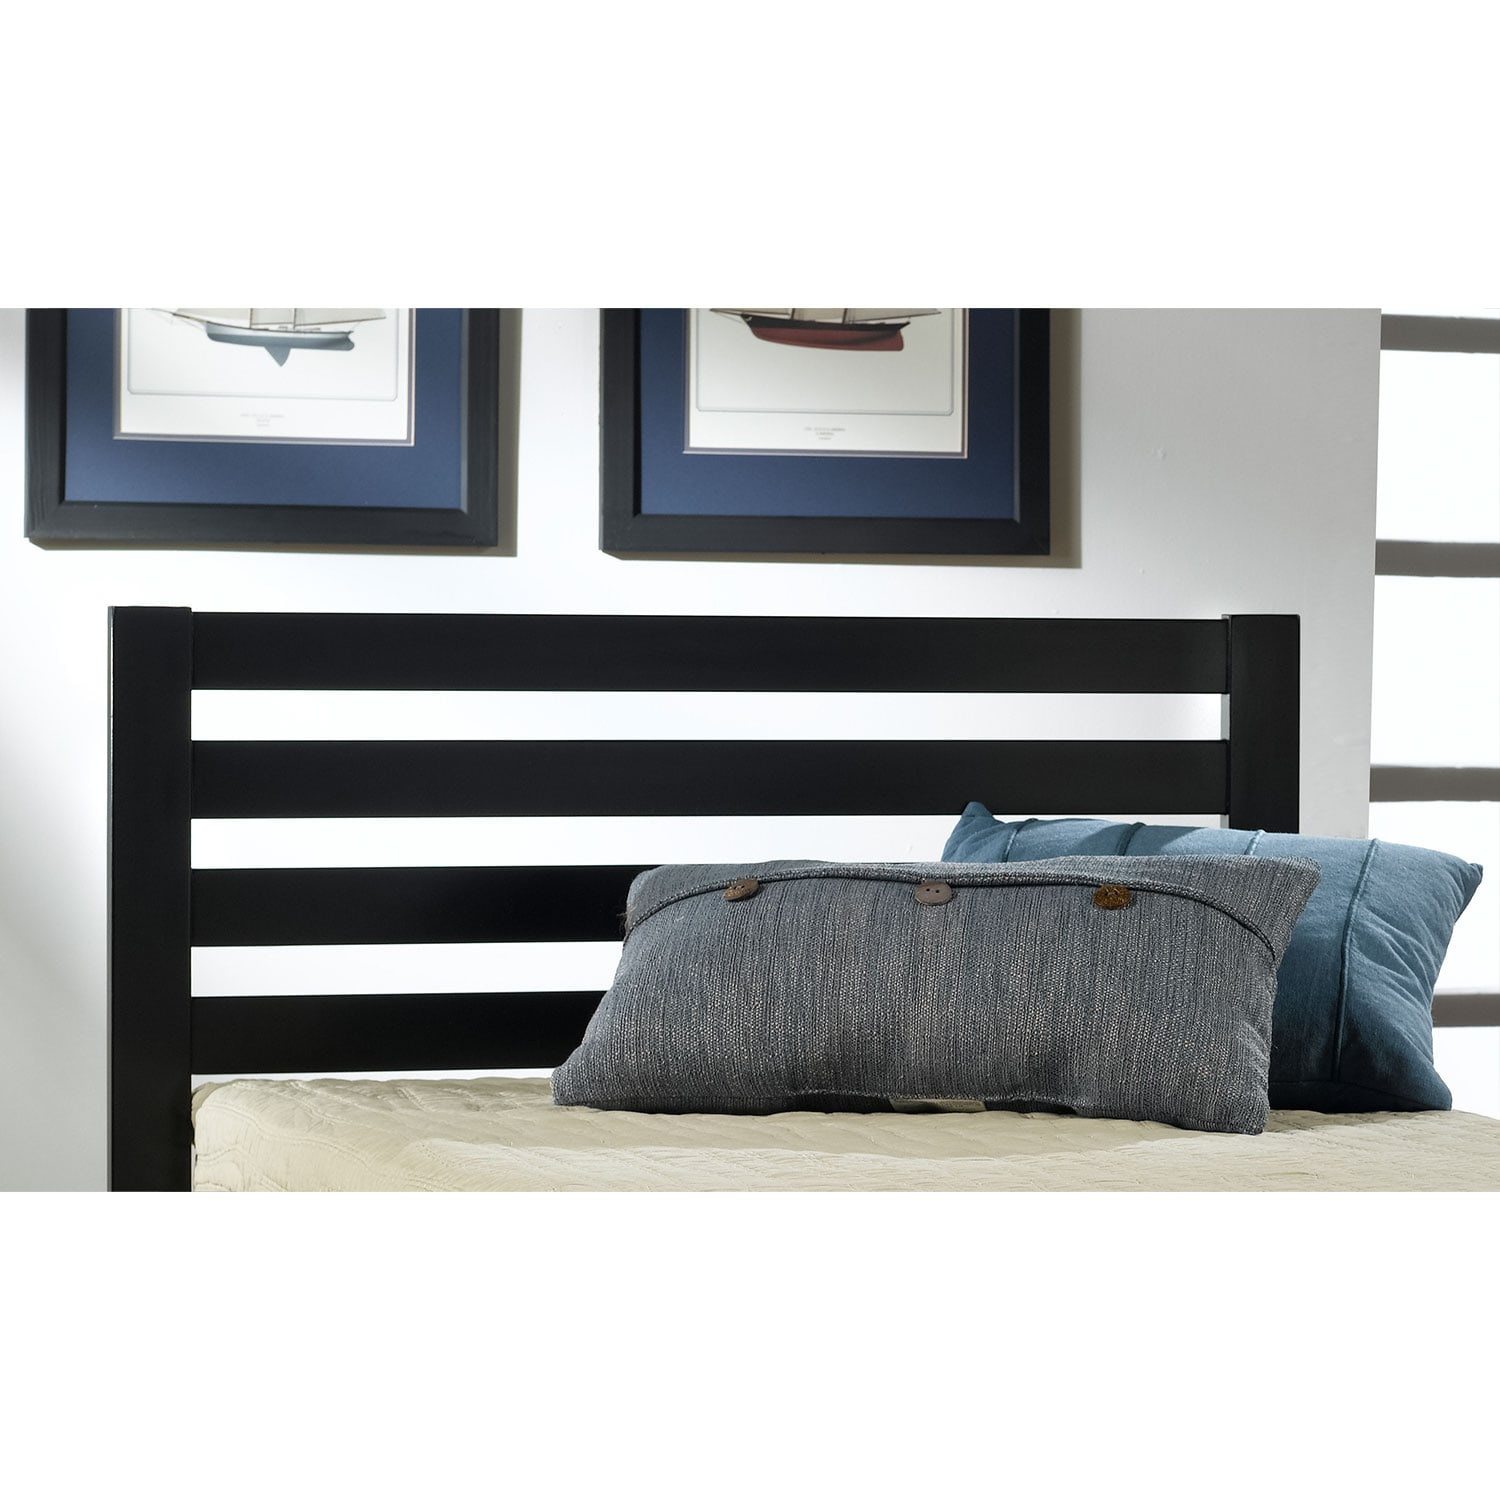 Bedroom Furniture - Aiden Twin Bed - Black